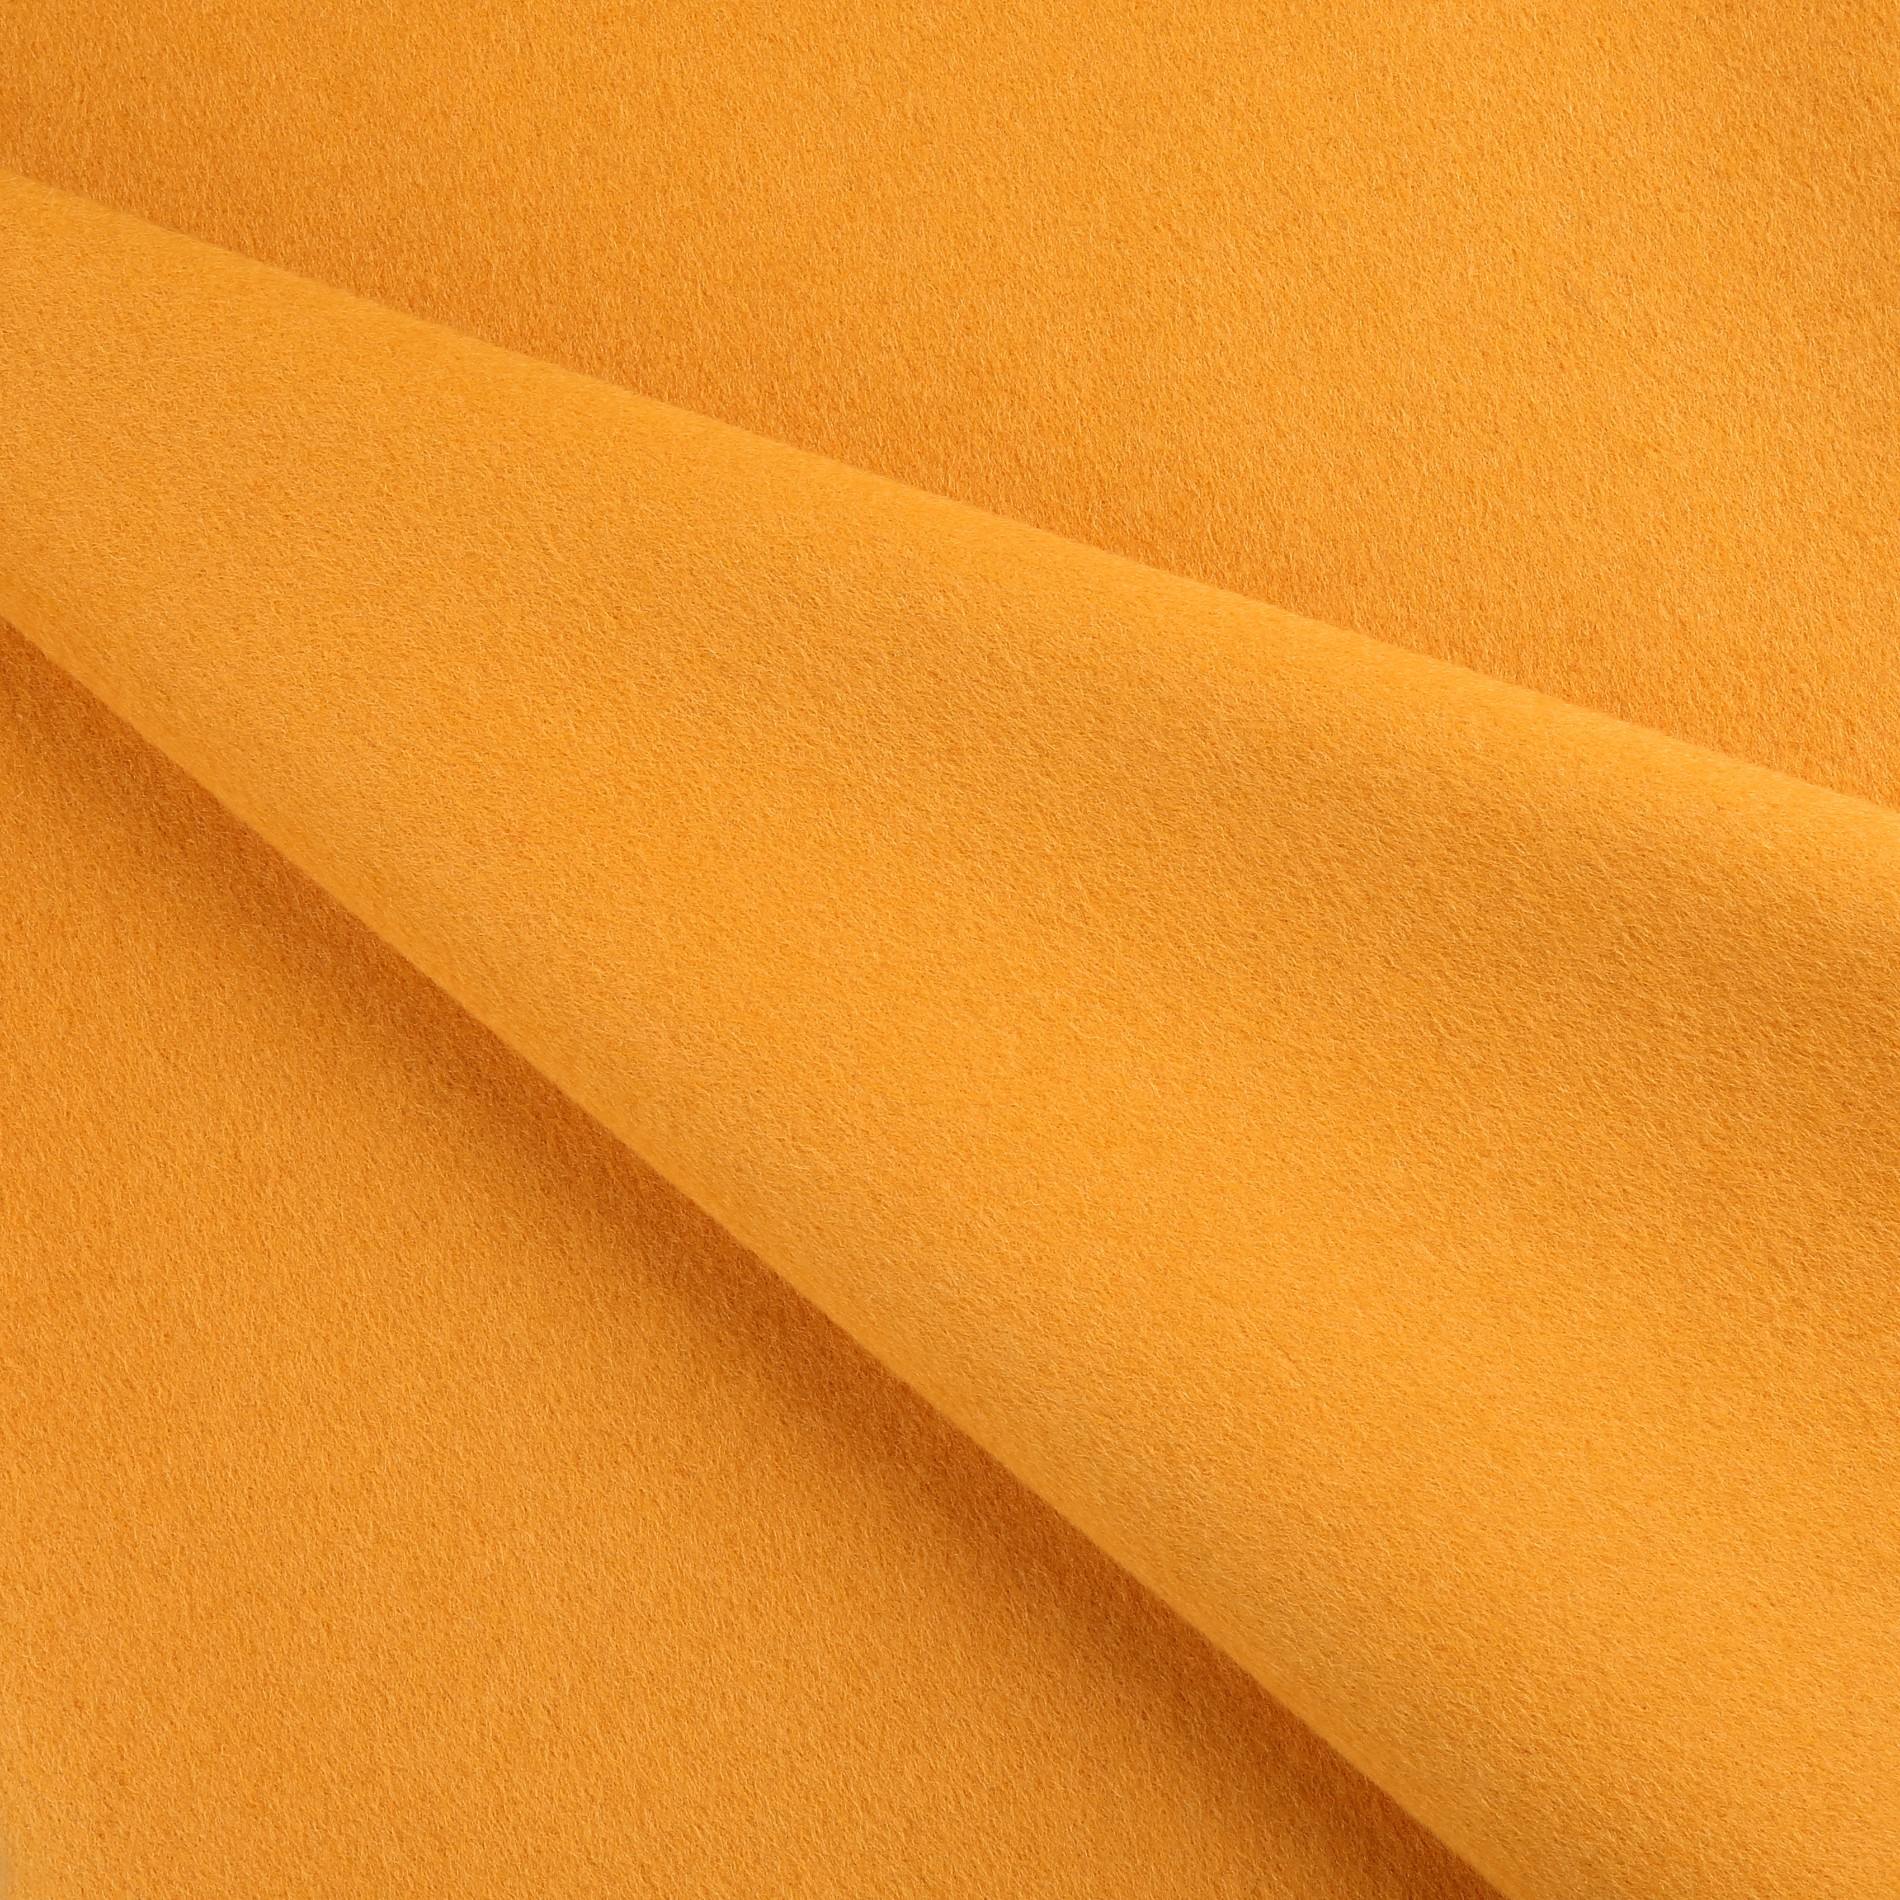 Wool Melton Fabric Yellow Colors Manufacturers, Wool Melton Fabric Yellow Colors Factory, Supply Wool Melton Fabric Yellow Colors